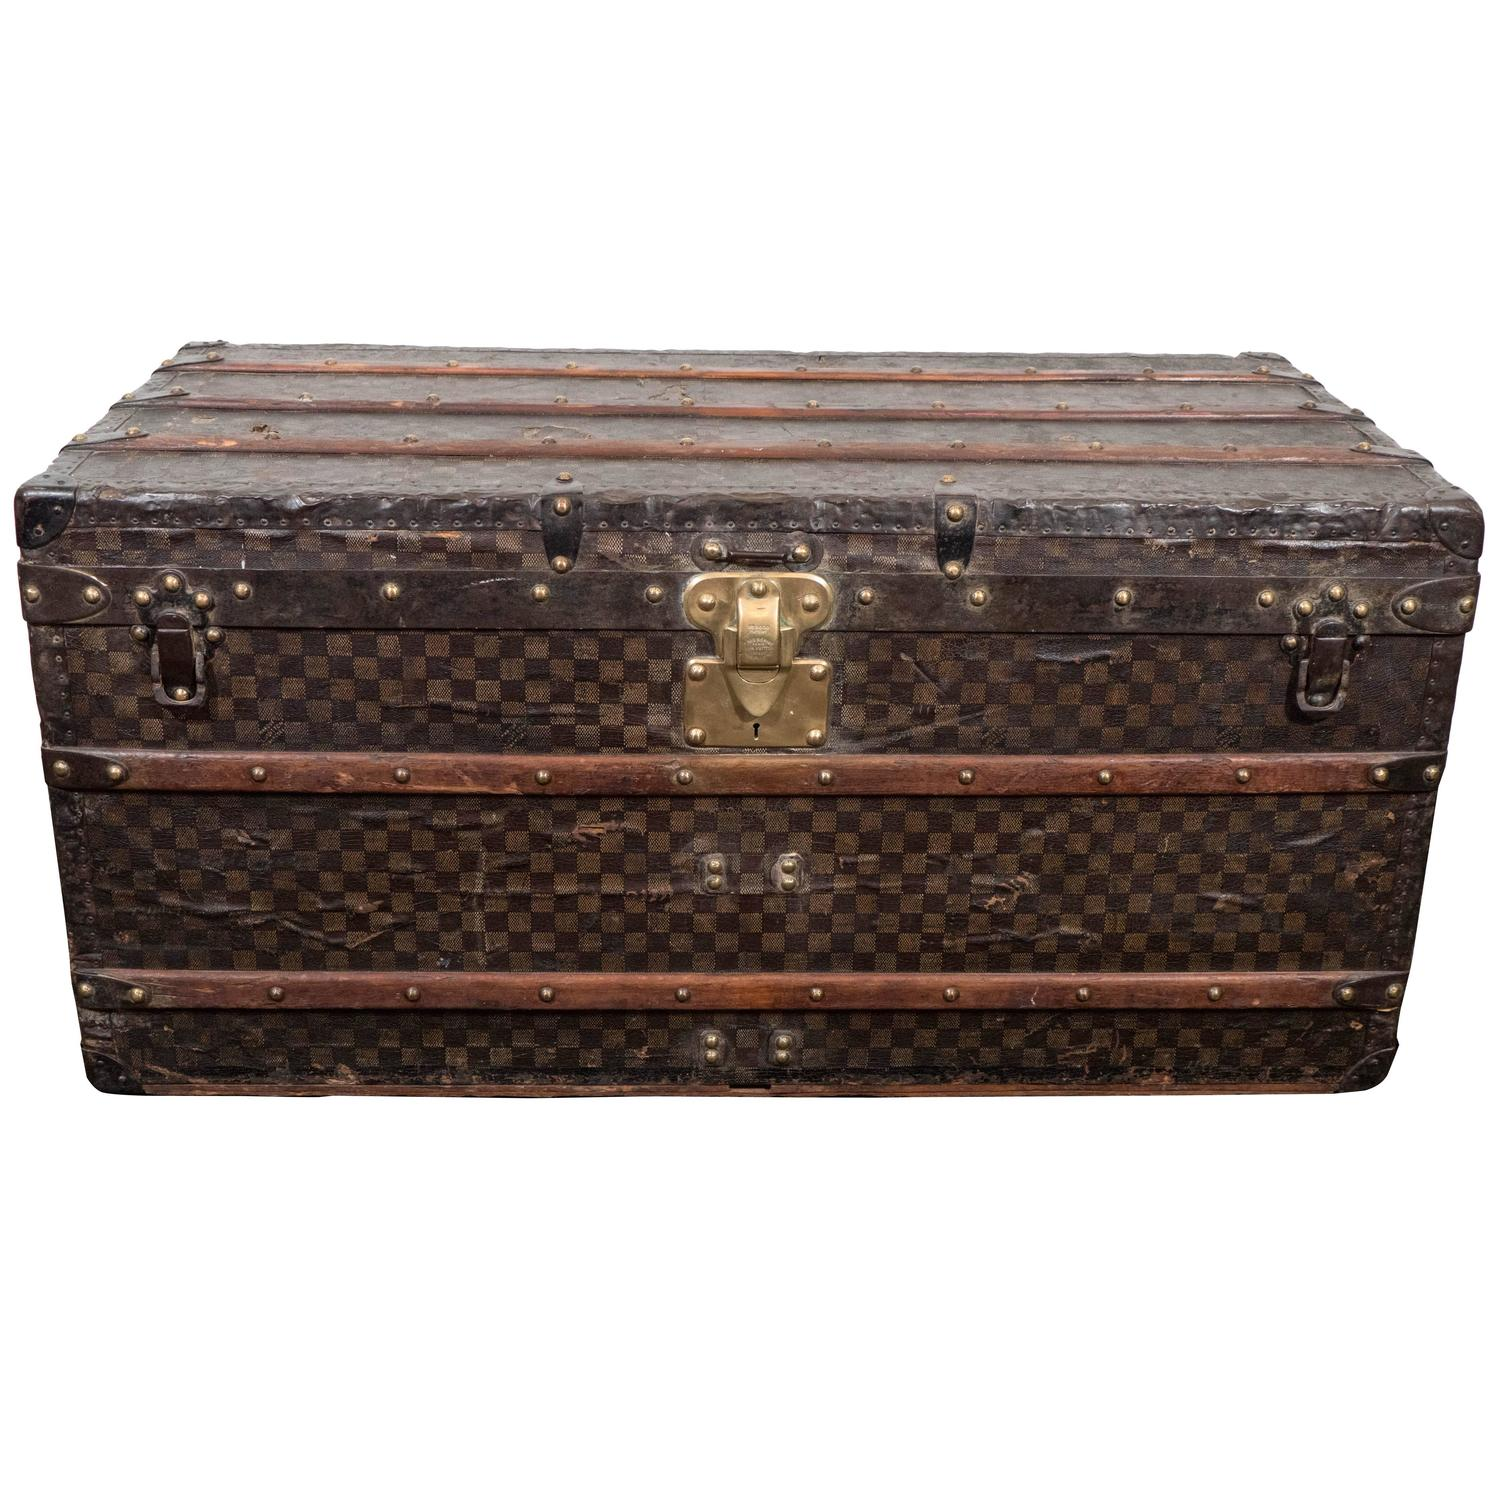 how to tell the age of a steamer trunk